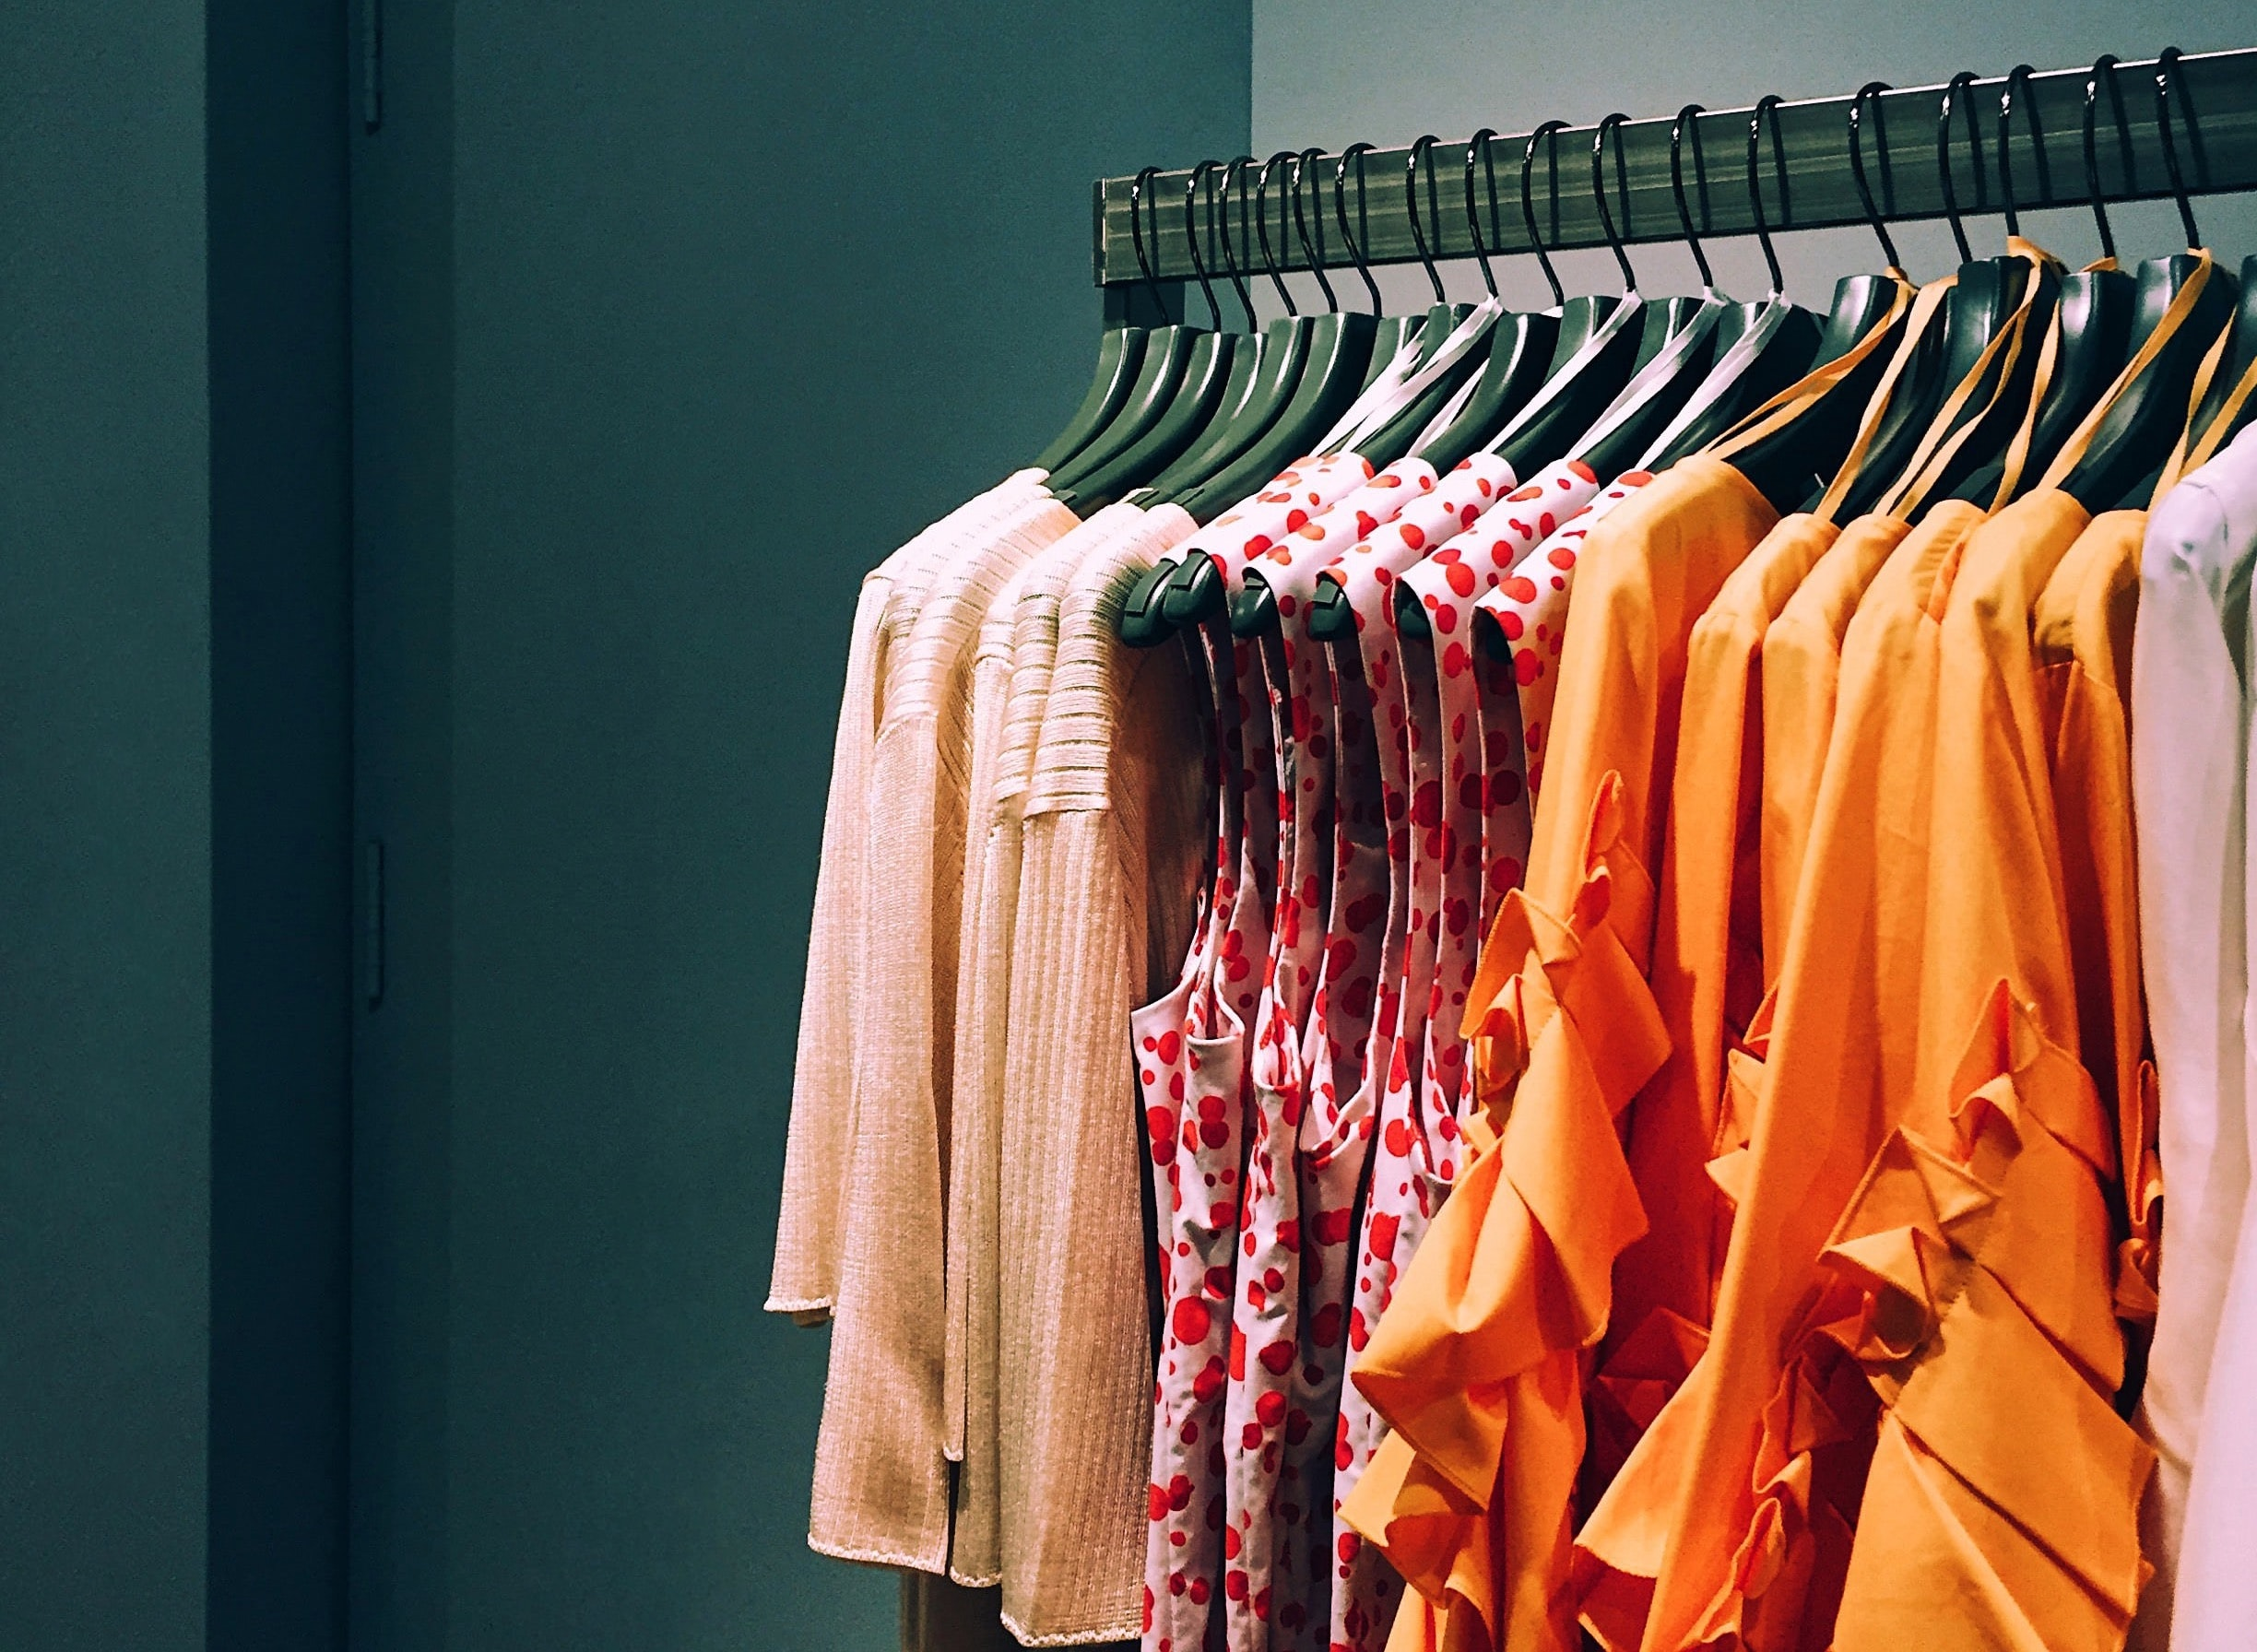 A rack of shopping clothes. Marcus Loke/Unsplash